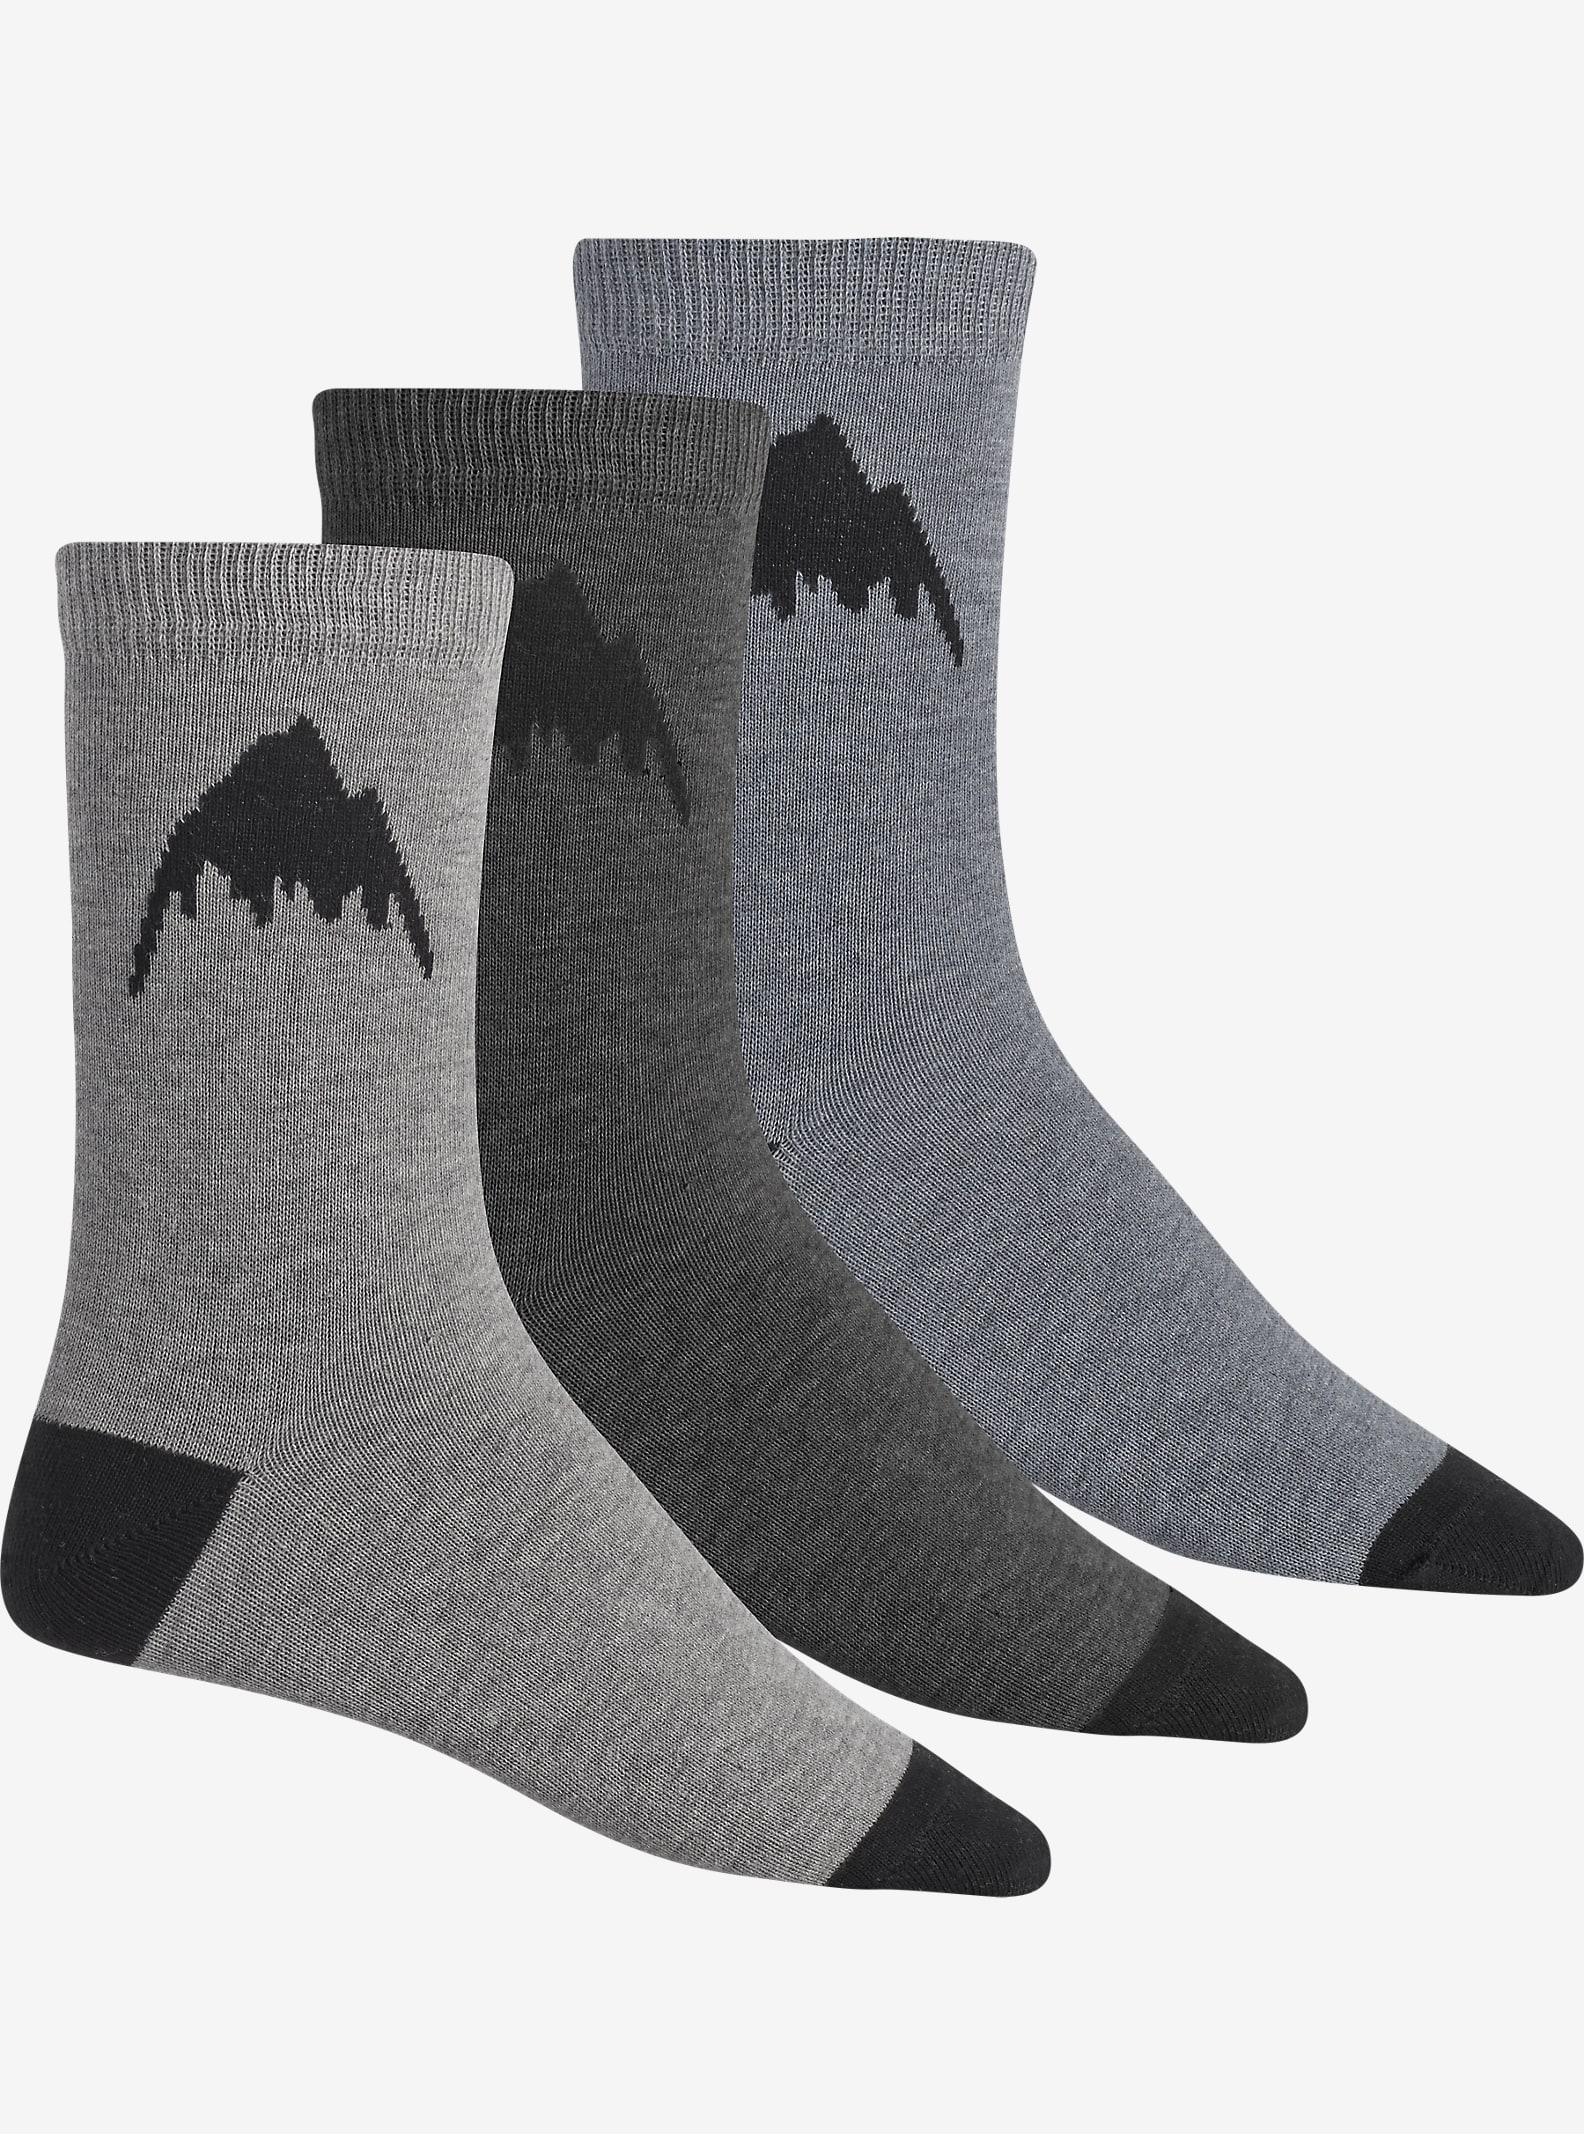 Burton Apres Sock 3 Pack shown in Heathered